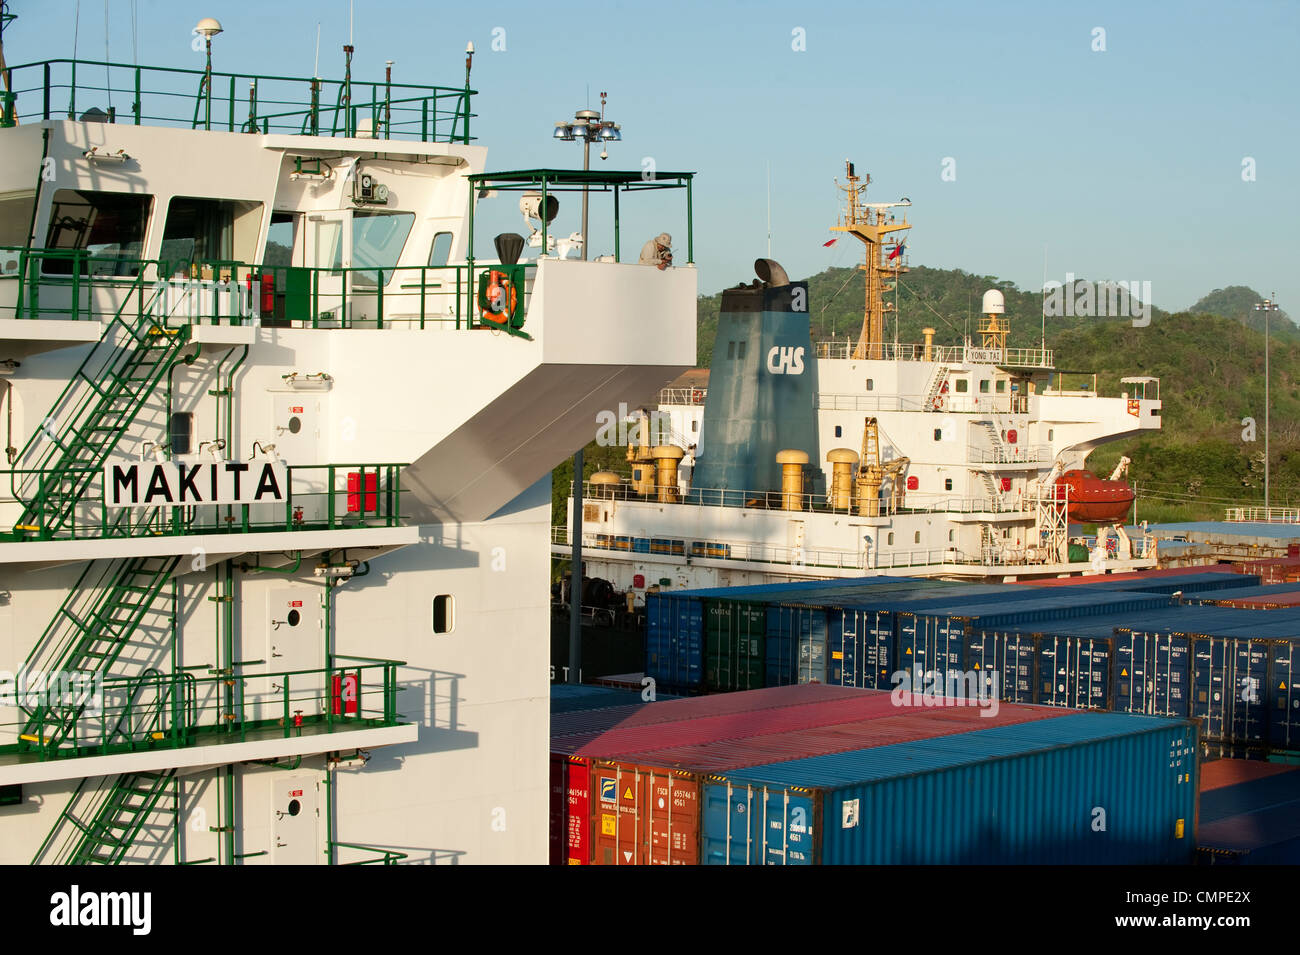 Superstructure of cargo ship at Miraflores Locks,Panama Canal - Stock Image